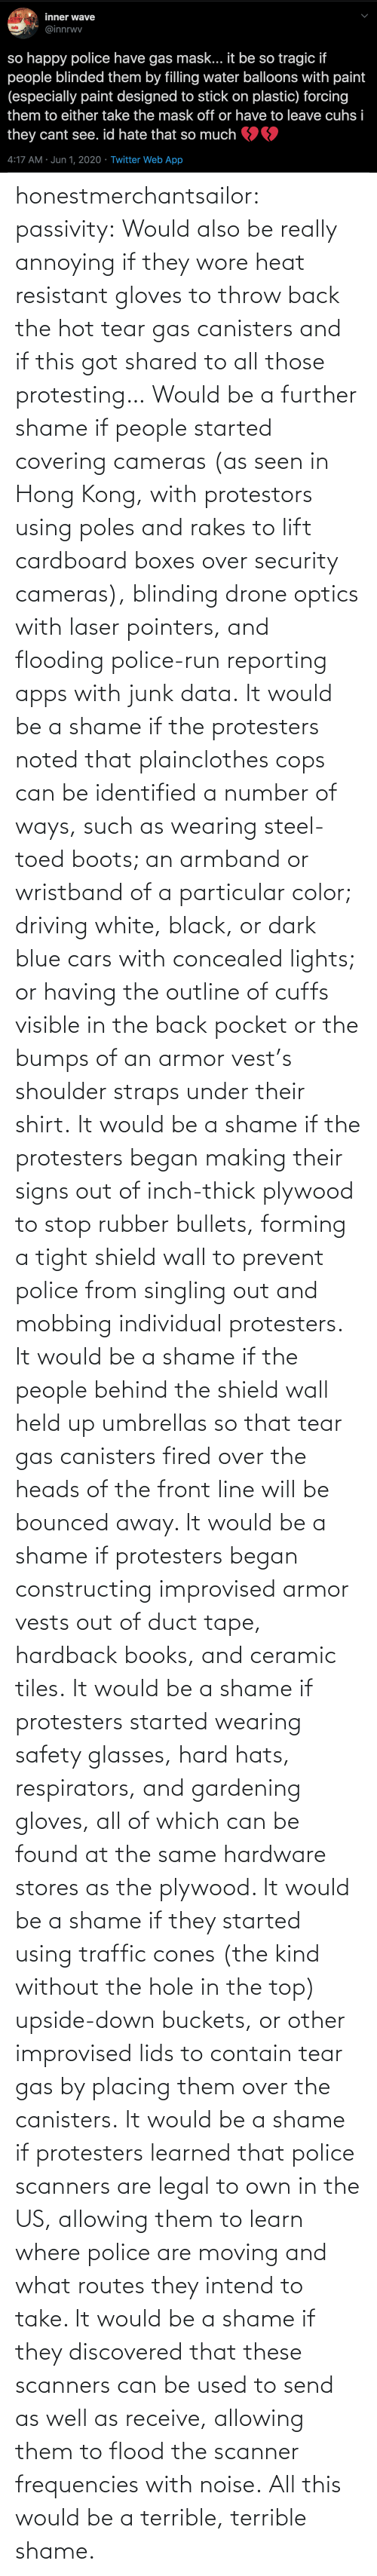 The Shield: honestmerchantsailor:  passivity: Would also be really annoying if they wore heat resistant gloves to throw back the hot tear gas canisters and if this got shared to all those protesting… Would be a further shame if people started covering cameras (as seen in Hong Kong, with protestors using poles and rakes to lift cardboard boxes over security cameras), blinding drone optics with laser pointers, and flooding police-run reporting apps with junk data. It would be a shame if the protesters noted that plainclothes cops can be identified a number of ways, such as wearing steel-toed boots; an armband or wristband of a particular color; driving white, black, or dark blue cars with concealed lights; or having the outline of cuffs visible in the back pocket or the bumps of an armor vest's shoulder straps under their shirt. It would be a shame if the protesters began making their signs out of inch-thick plywood to stop rubber bullets, forming a tight shield wall to prevent police from singling out and mobbing individual protesters. It would be a shame if the people behind the shield wall held up umbrellas so that tear gas canisters fired over the heads of the front line will be bounced away. It would be a shame if protesters began constructing improvised armor vests out of duct tape, hardback books, and ceramic tiles. It would be a shame if protesters started wearing safety glasses, hard hats, respirators, and gardening gloves, all of which can be found at the same hardware stores as the plywood. It would be a shame if they started using traffic cones (the kind without the hole in the top) upside-down buckets, or other improvised lids to contain tear gas by placing them over the canisters. It would be a shame if protesters learned that police scanners are legal to own in the US, allowing them to learn where police are moving and what routes they intend to take. It would be a shame if they discovered that these scanners can be used to send as well as receive, allowing them to flood the scanner frequencies with noise. All this would be a terrible, terrible shame.